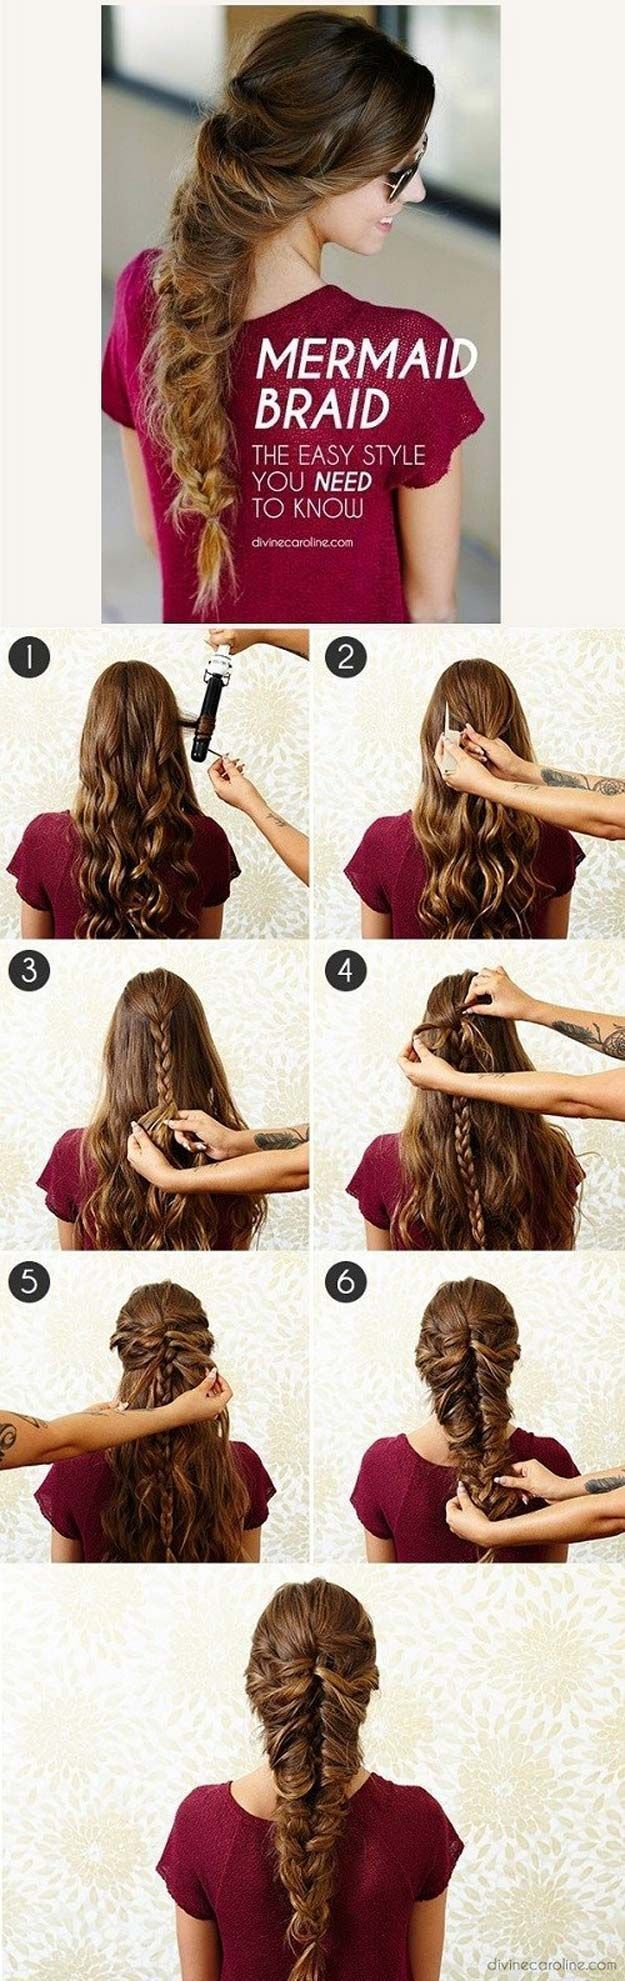 Best Hair Braiding Tutorials - Mermaid Braid - Easy Step by Step Tutorials for Braids - How To Braid Fishtail, French Braids, Flower Crown, Side Braids, Cornrows, Updos - Cool Braided Hairstyles for Girls, Teens and Women - School, Day and Evening, Boho, Casual and Formal Looks http://diyprojectsforteens.com/hair-braiding-tutorials #braidedhairstylesboho #braidedhairstylesupdo